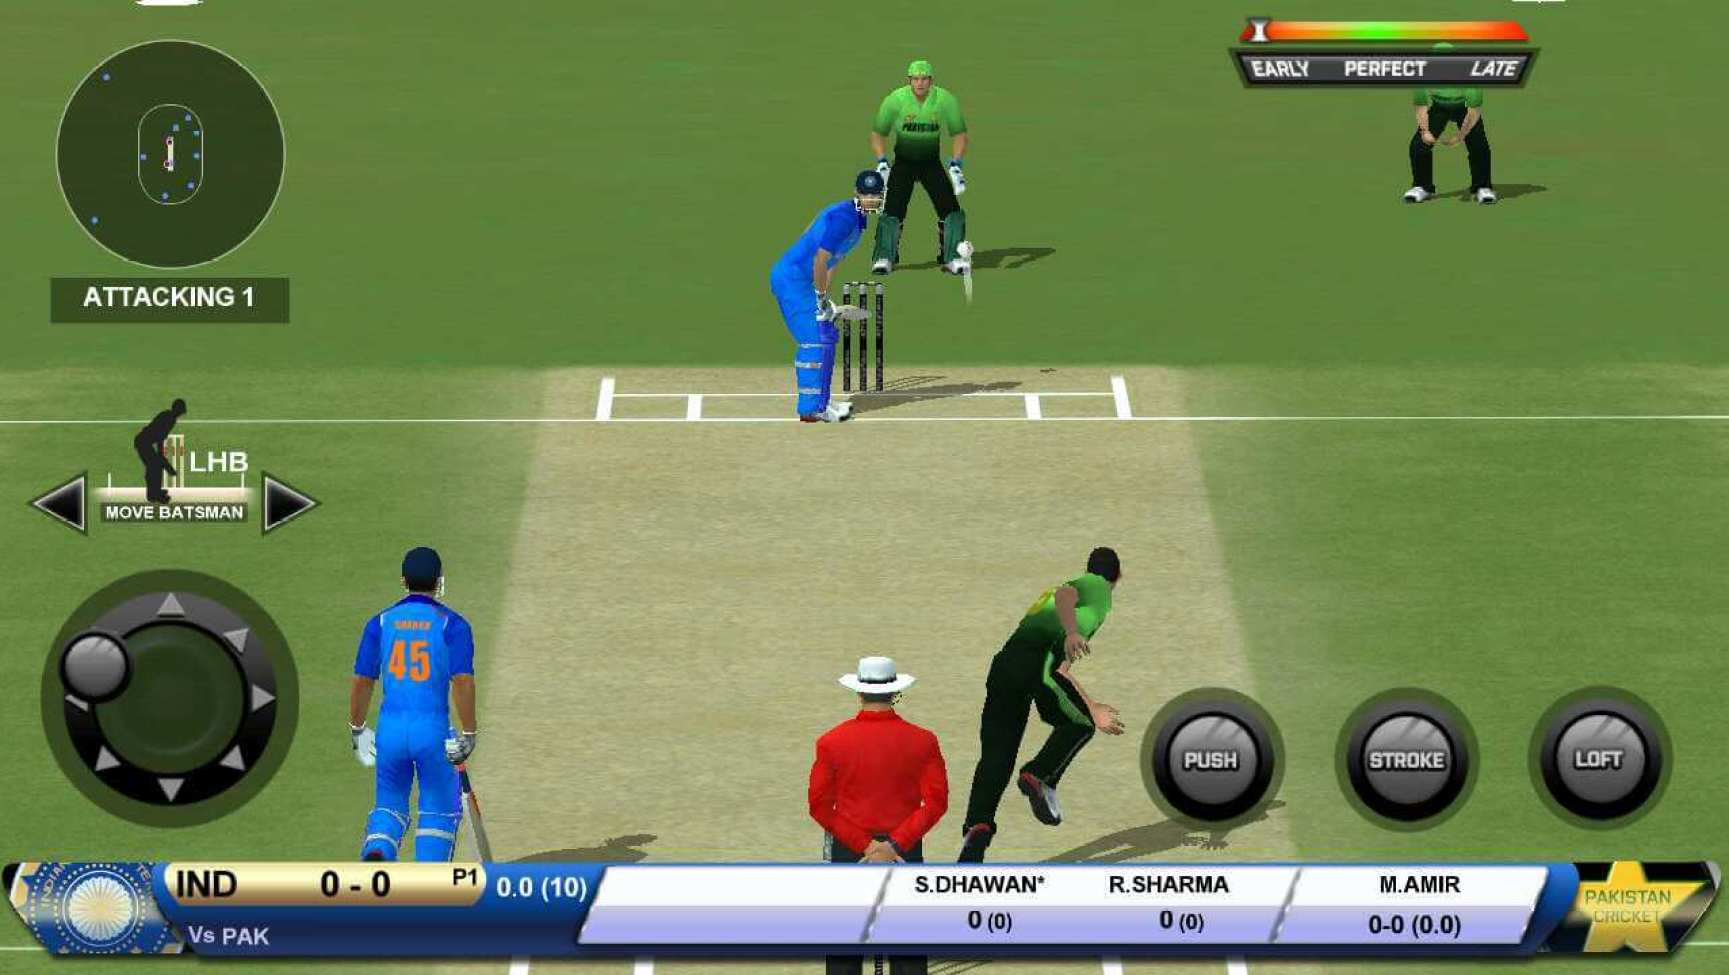 Real Cricket 20 Mod APK Version